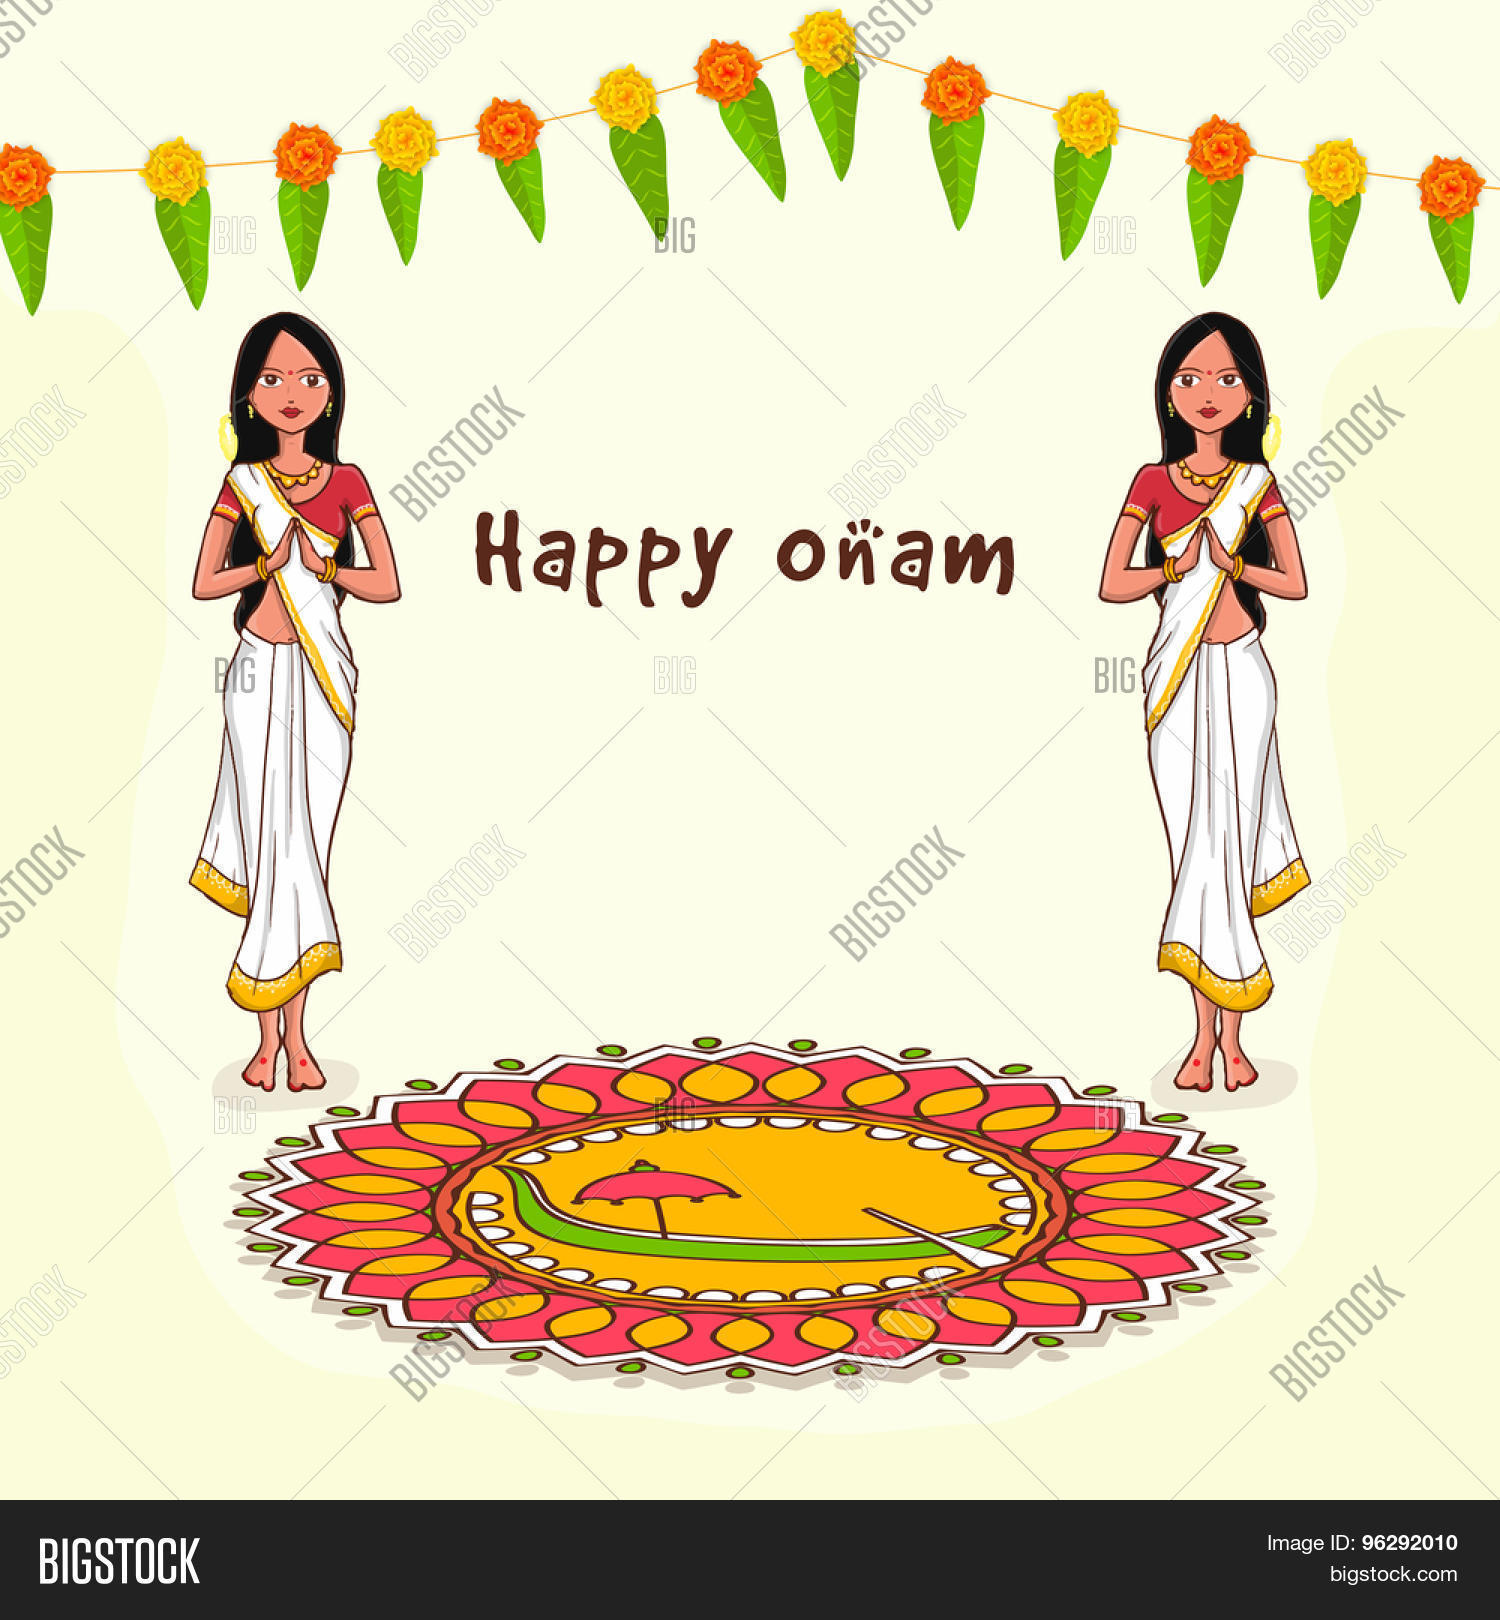 Beautiful Greeting Card With Young Women In Traditional Indian